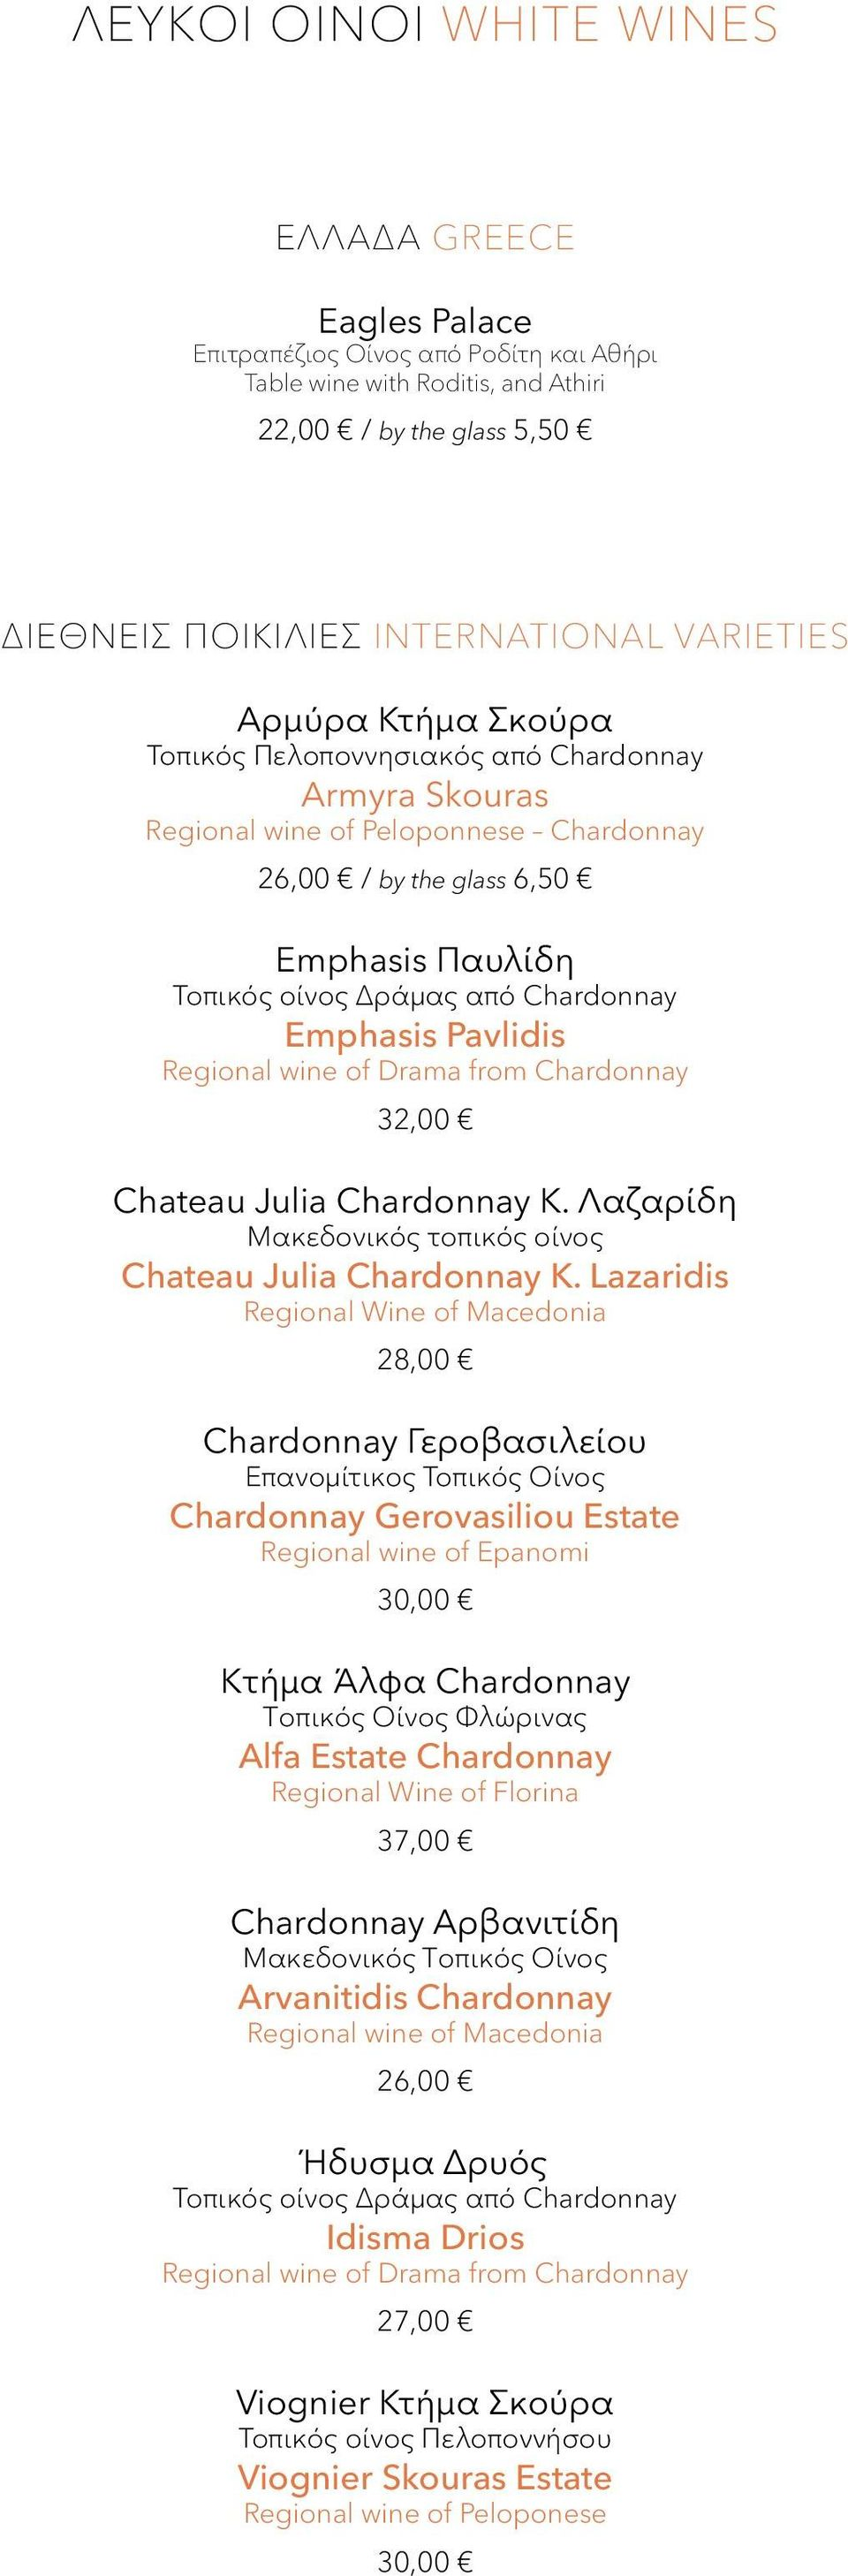 Emphasis Pavlidis Regional wine of Drama from Chardonnay 32,00 Chateau Julia Chardonnay K. Λαζαρίδη Μακεδονικός τοπικός οίνος Chateau Julia Chardonnay K.